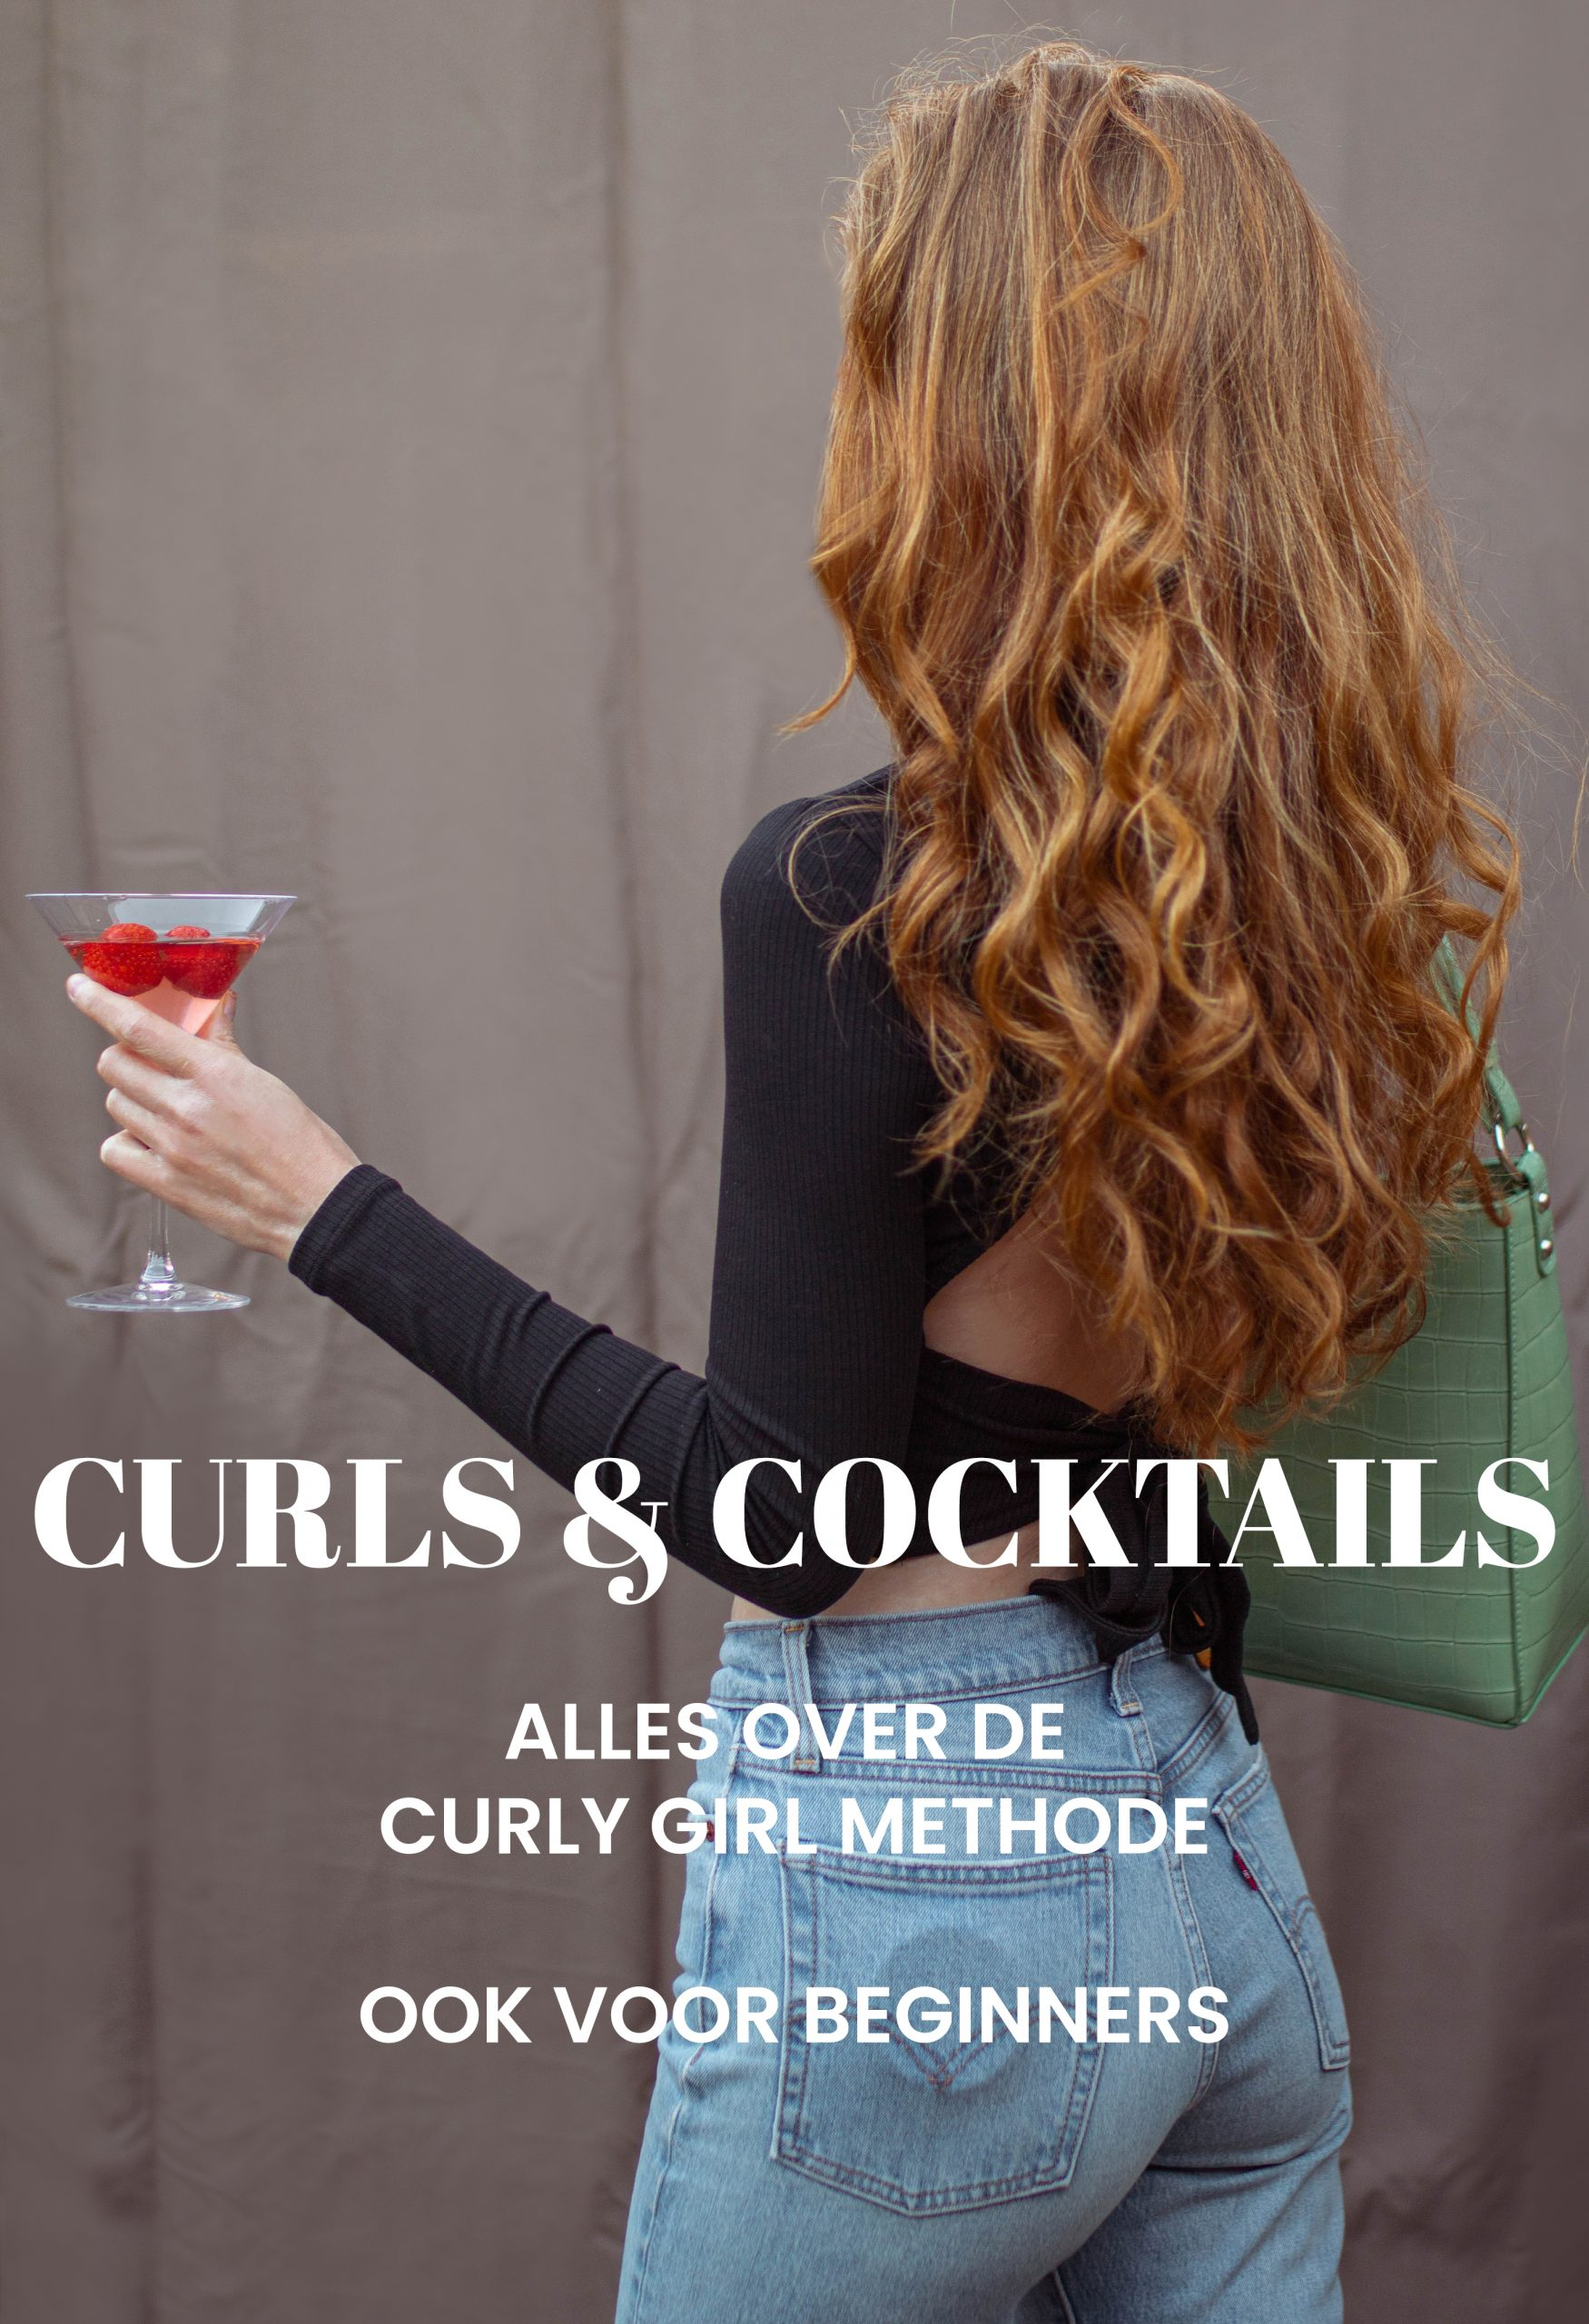 alles over curly girl methode